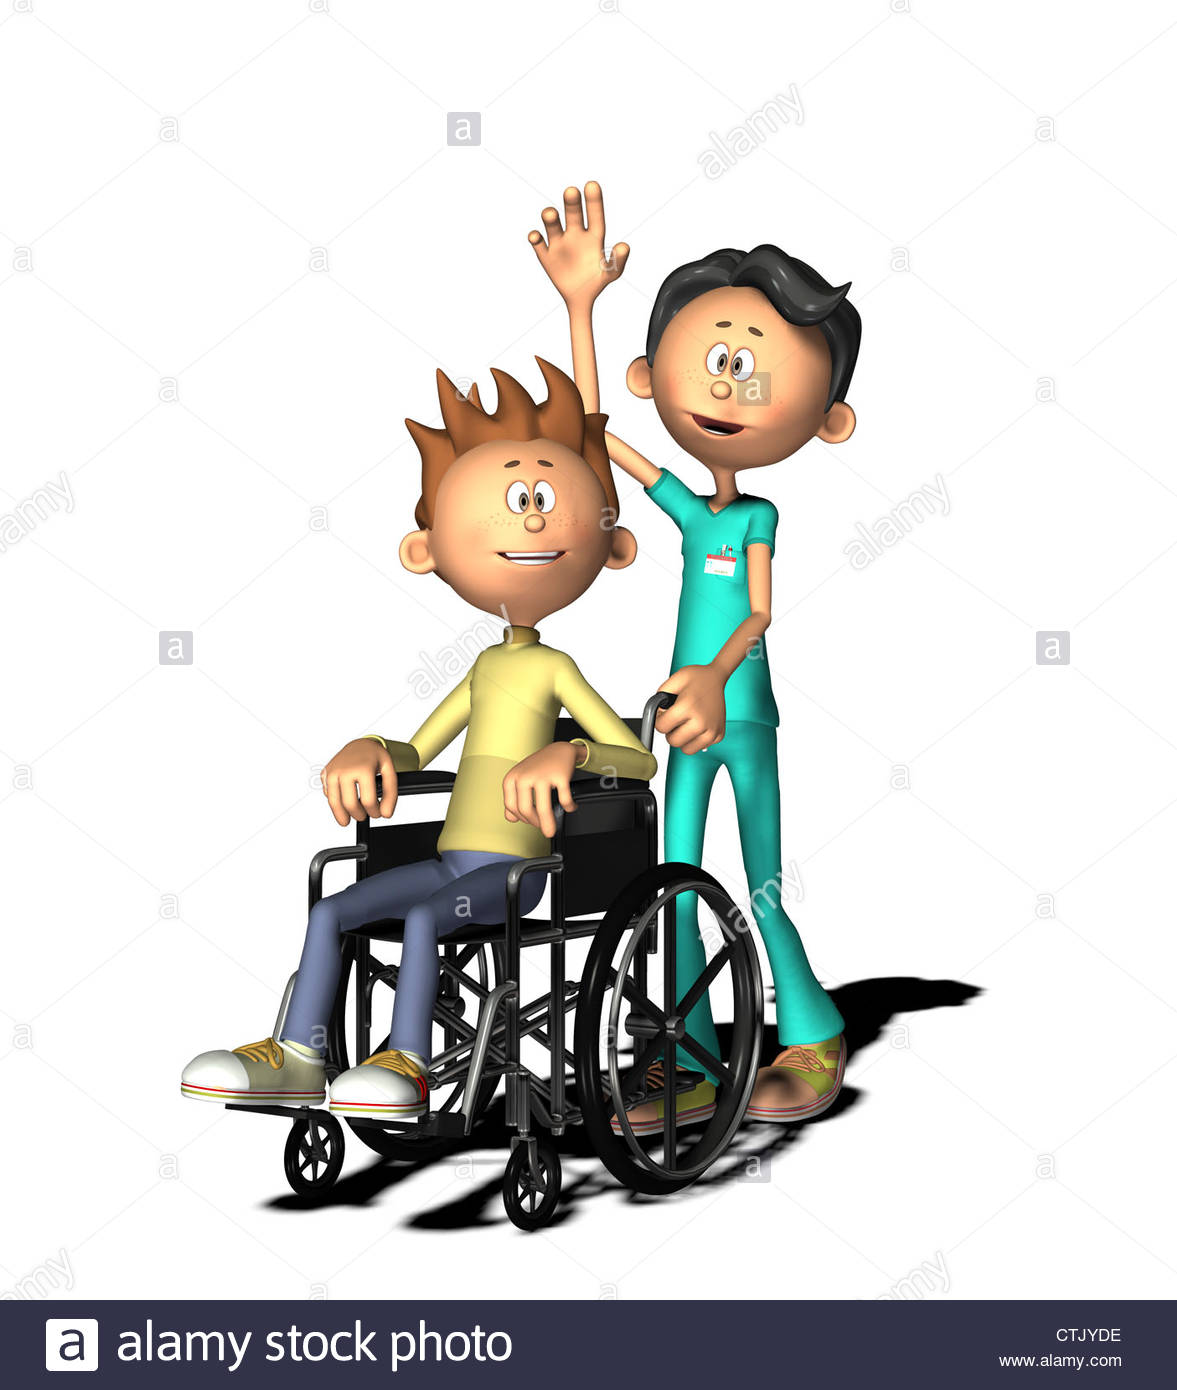 1177x1390 Cartoon Figure Boy With Wheelchair And Male Nurse Stock Photo